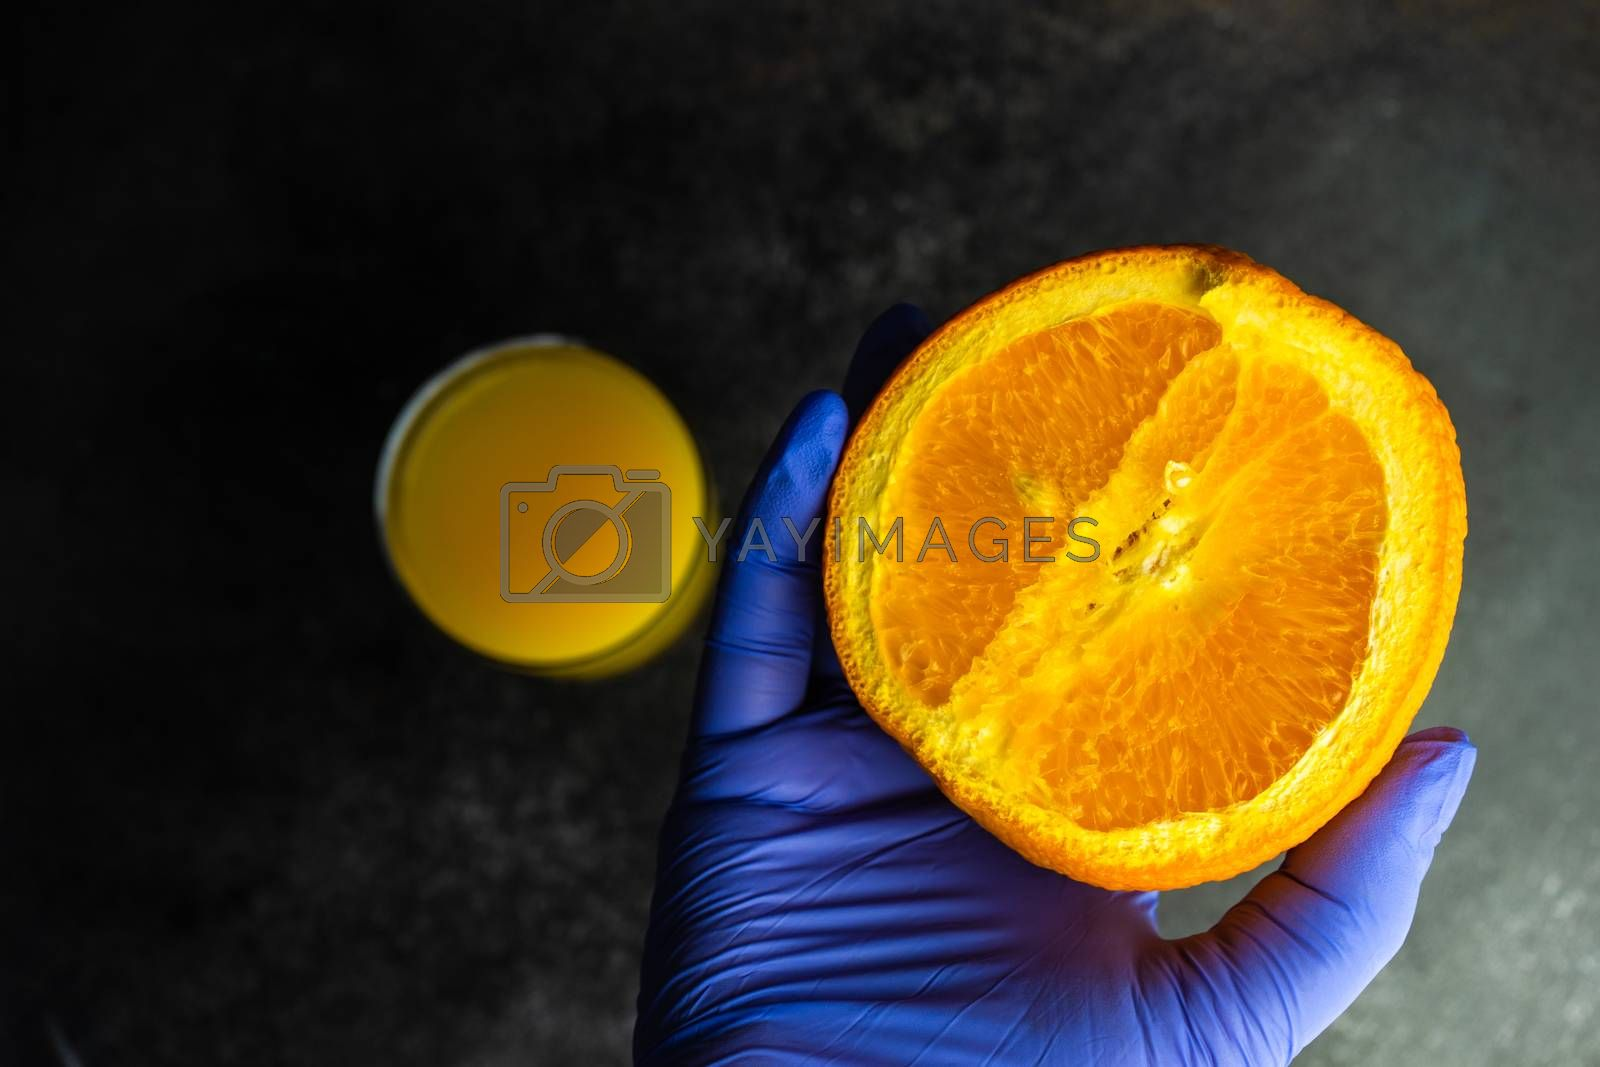 Coronavirus or Covid-19 epidemic healthcare concept with glass of citrus juice in the doctor's hands on stone background with copy space